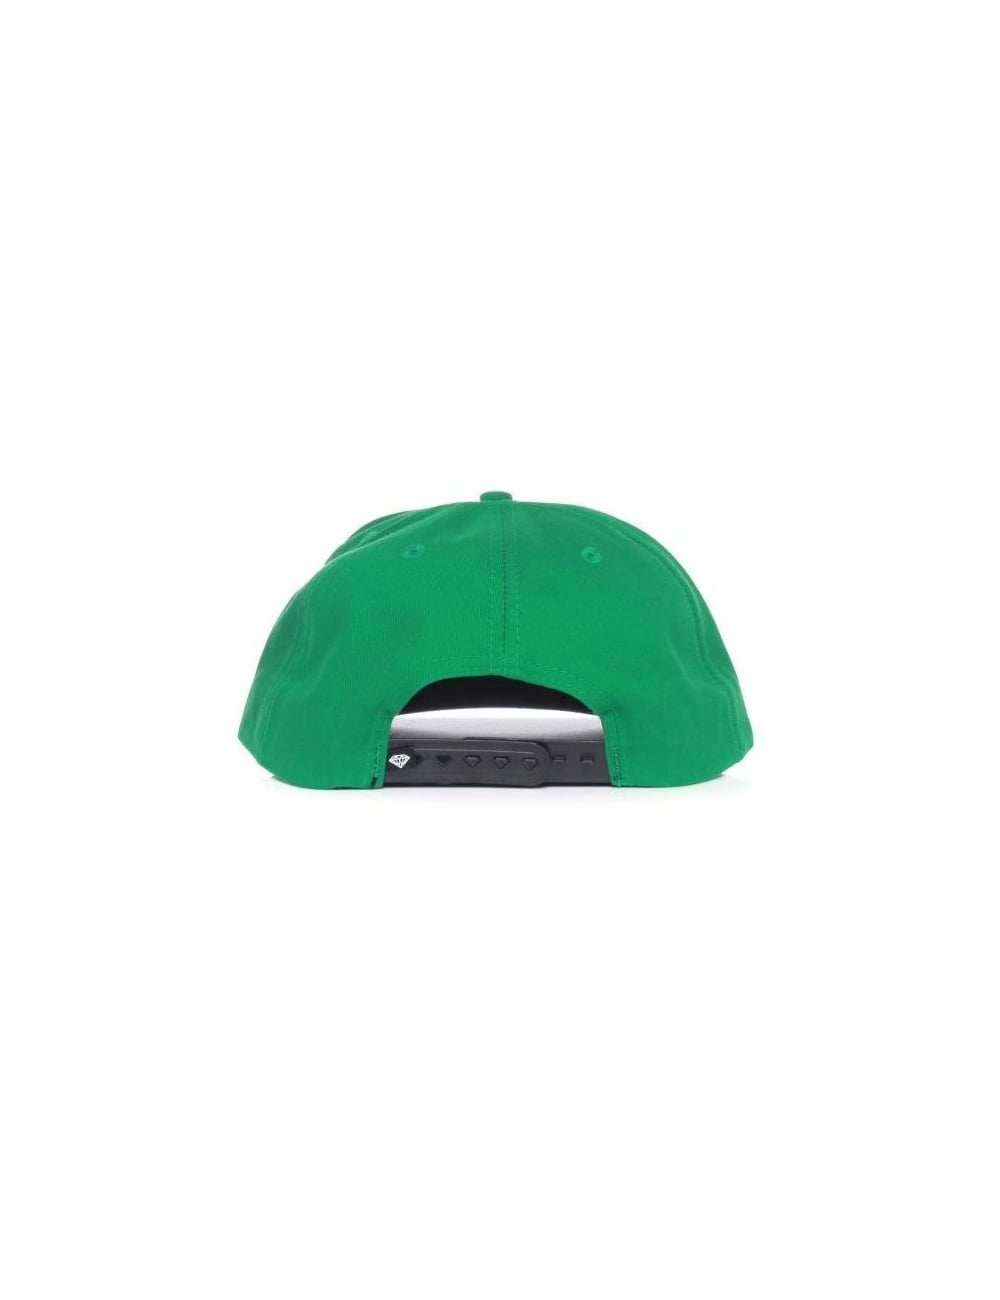 9f6426f8affa98 Diamond Supply Co Rock Snapback Hat - Green/White - Hat Shop from ...